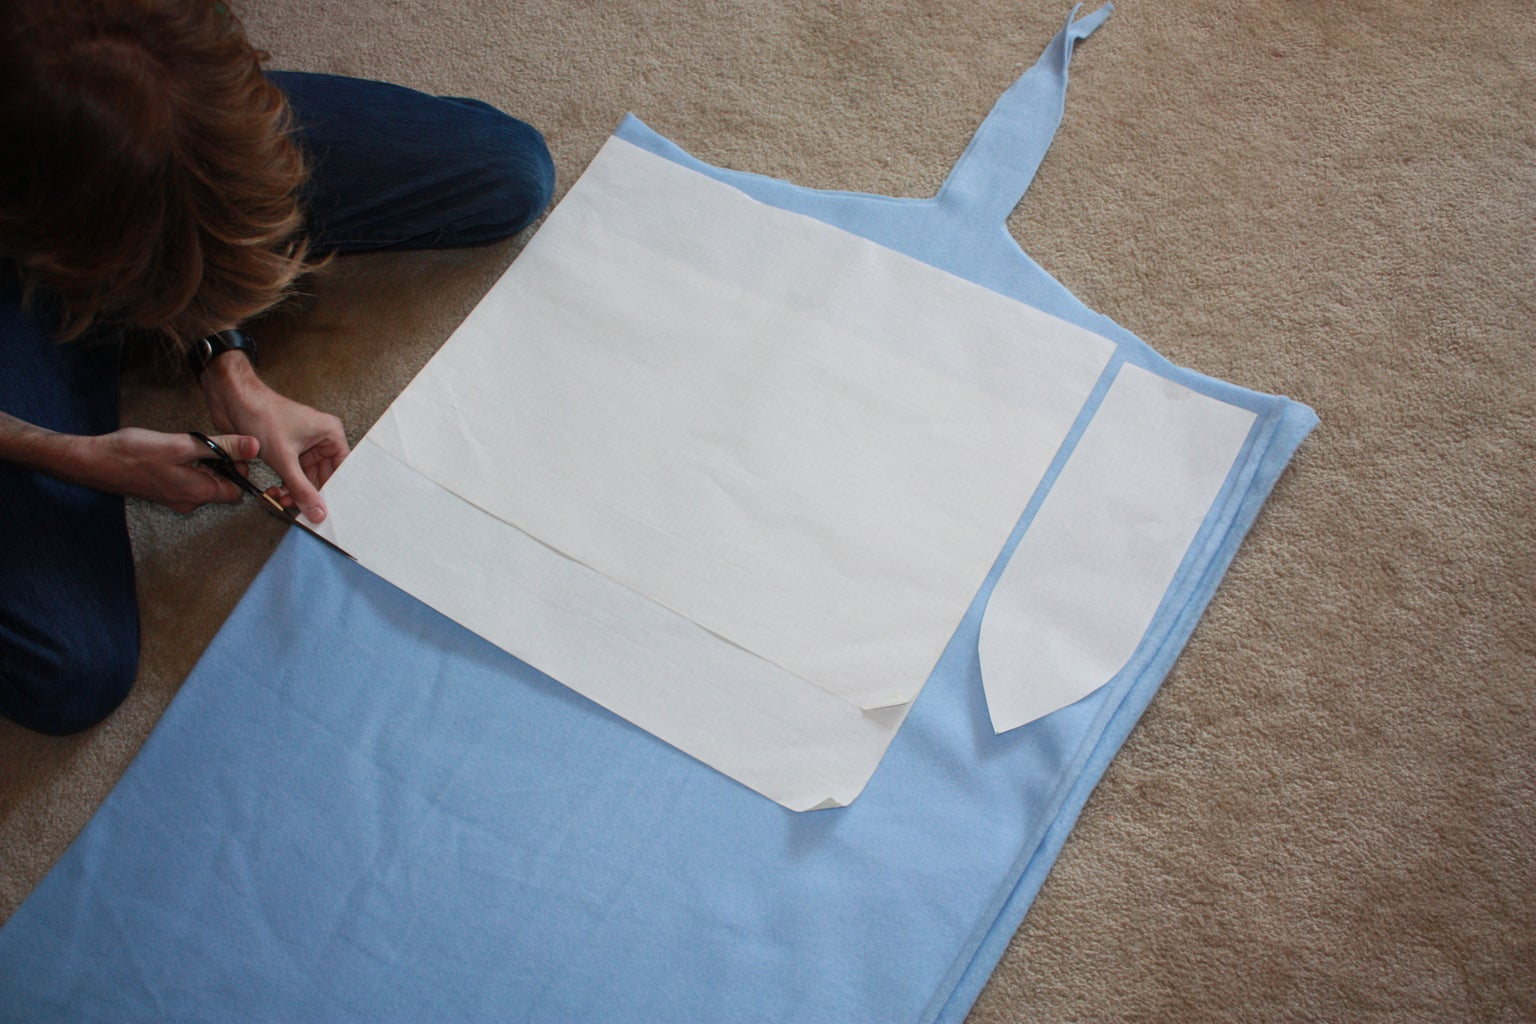 Cutting Out the Sleeves